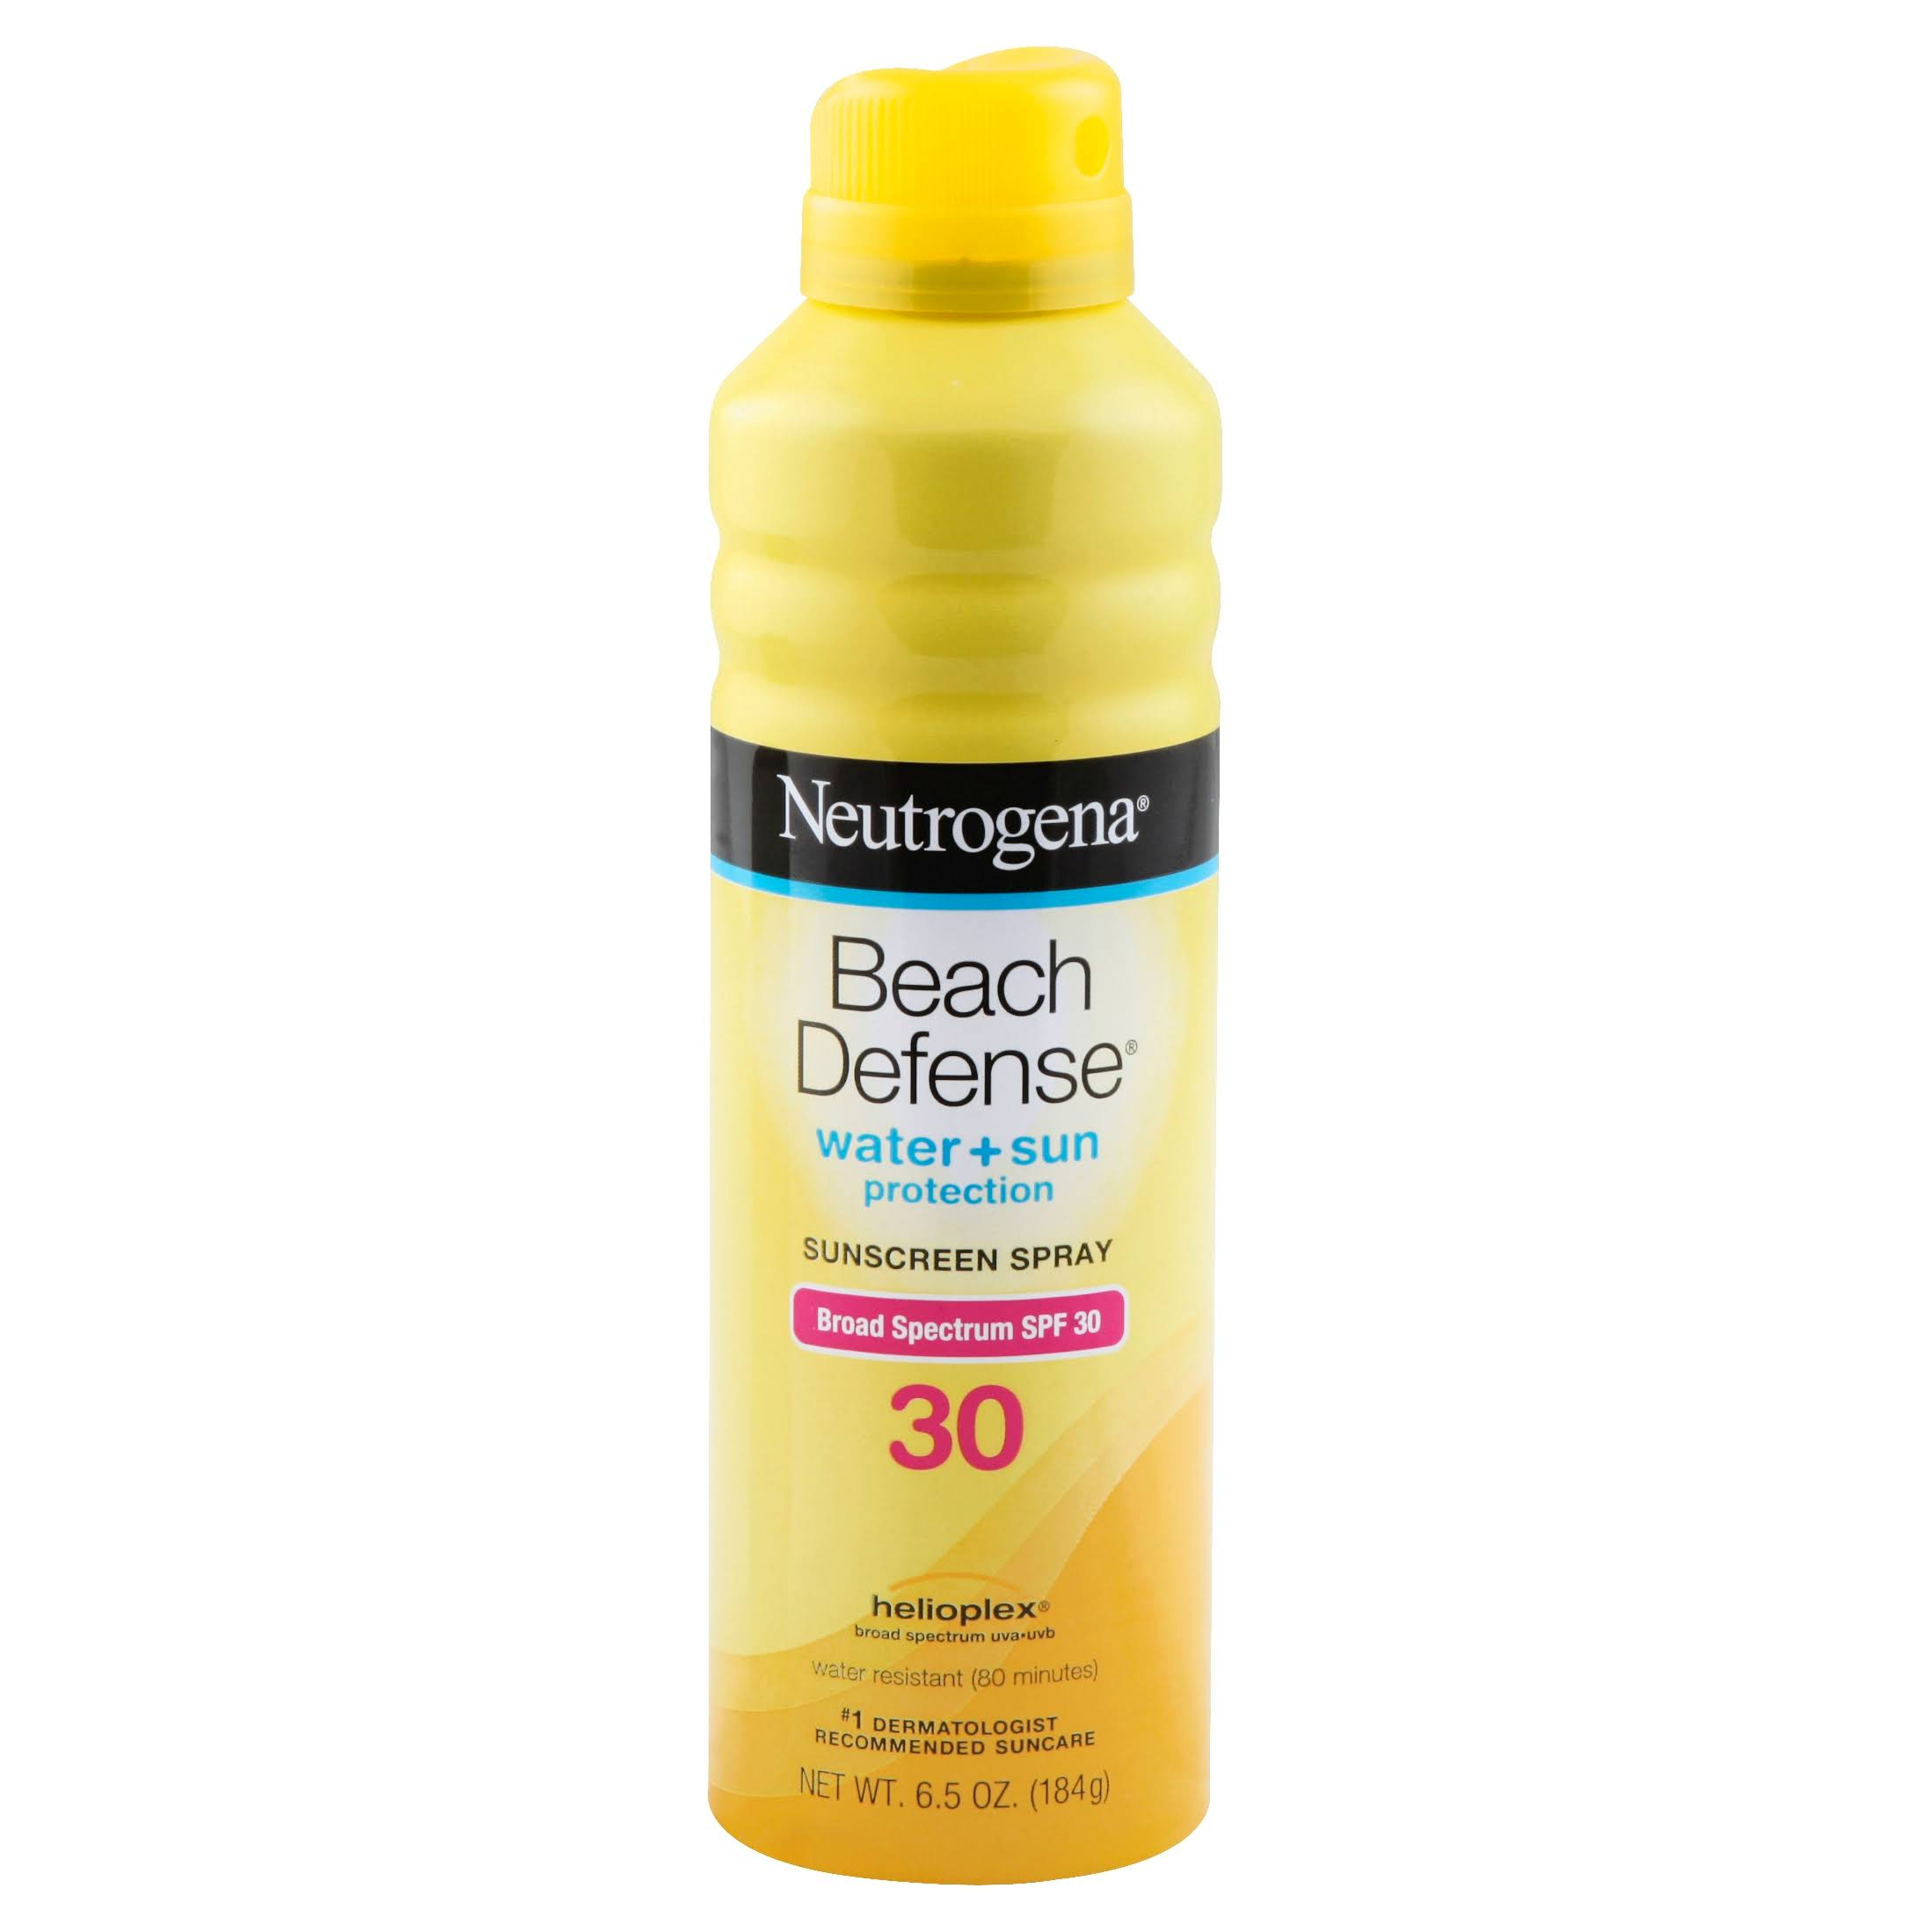 Neutrogena Beach Defense Water Plus Sun Protection Sunscreen Spray - Broad Spectrum SPF 30, 6.5oz